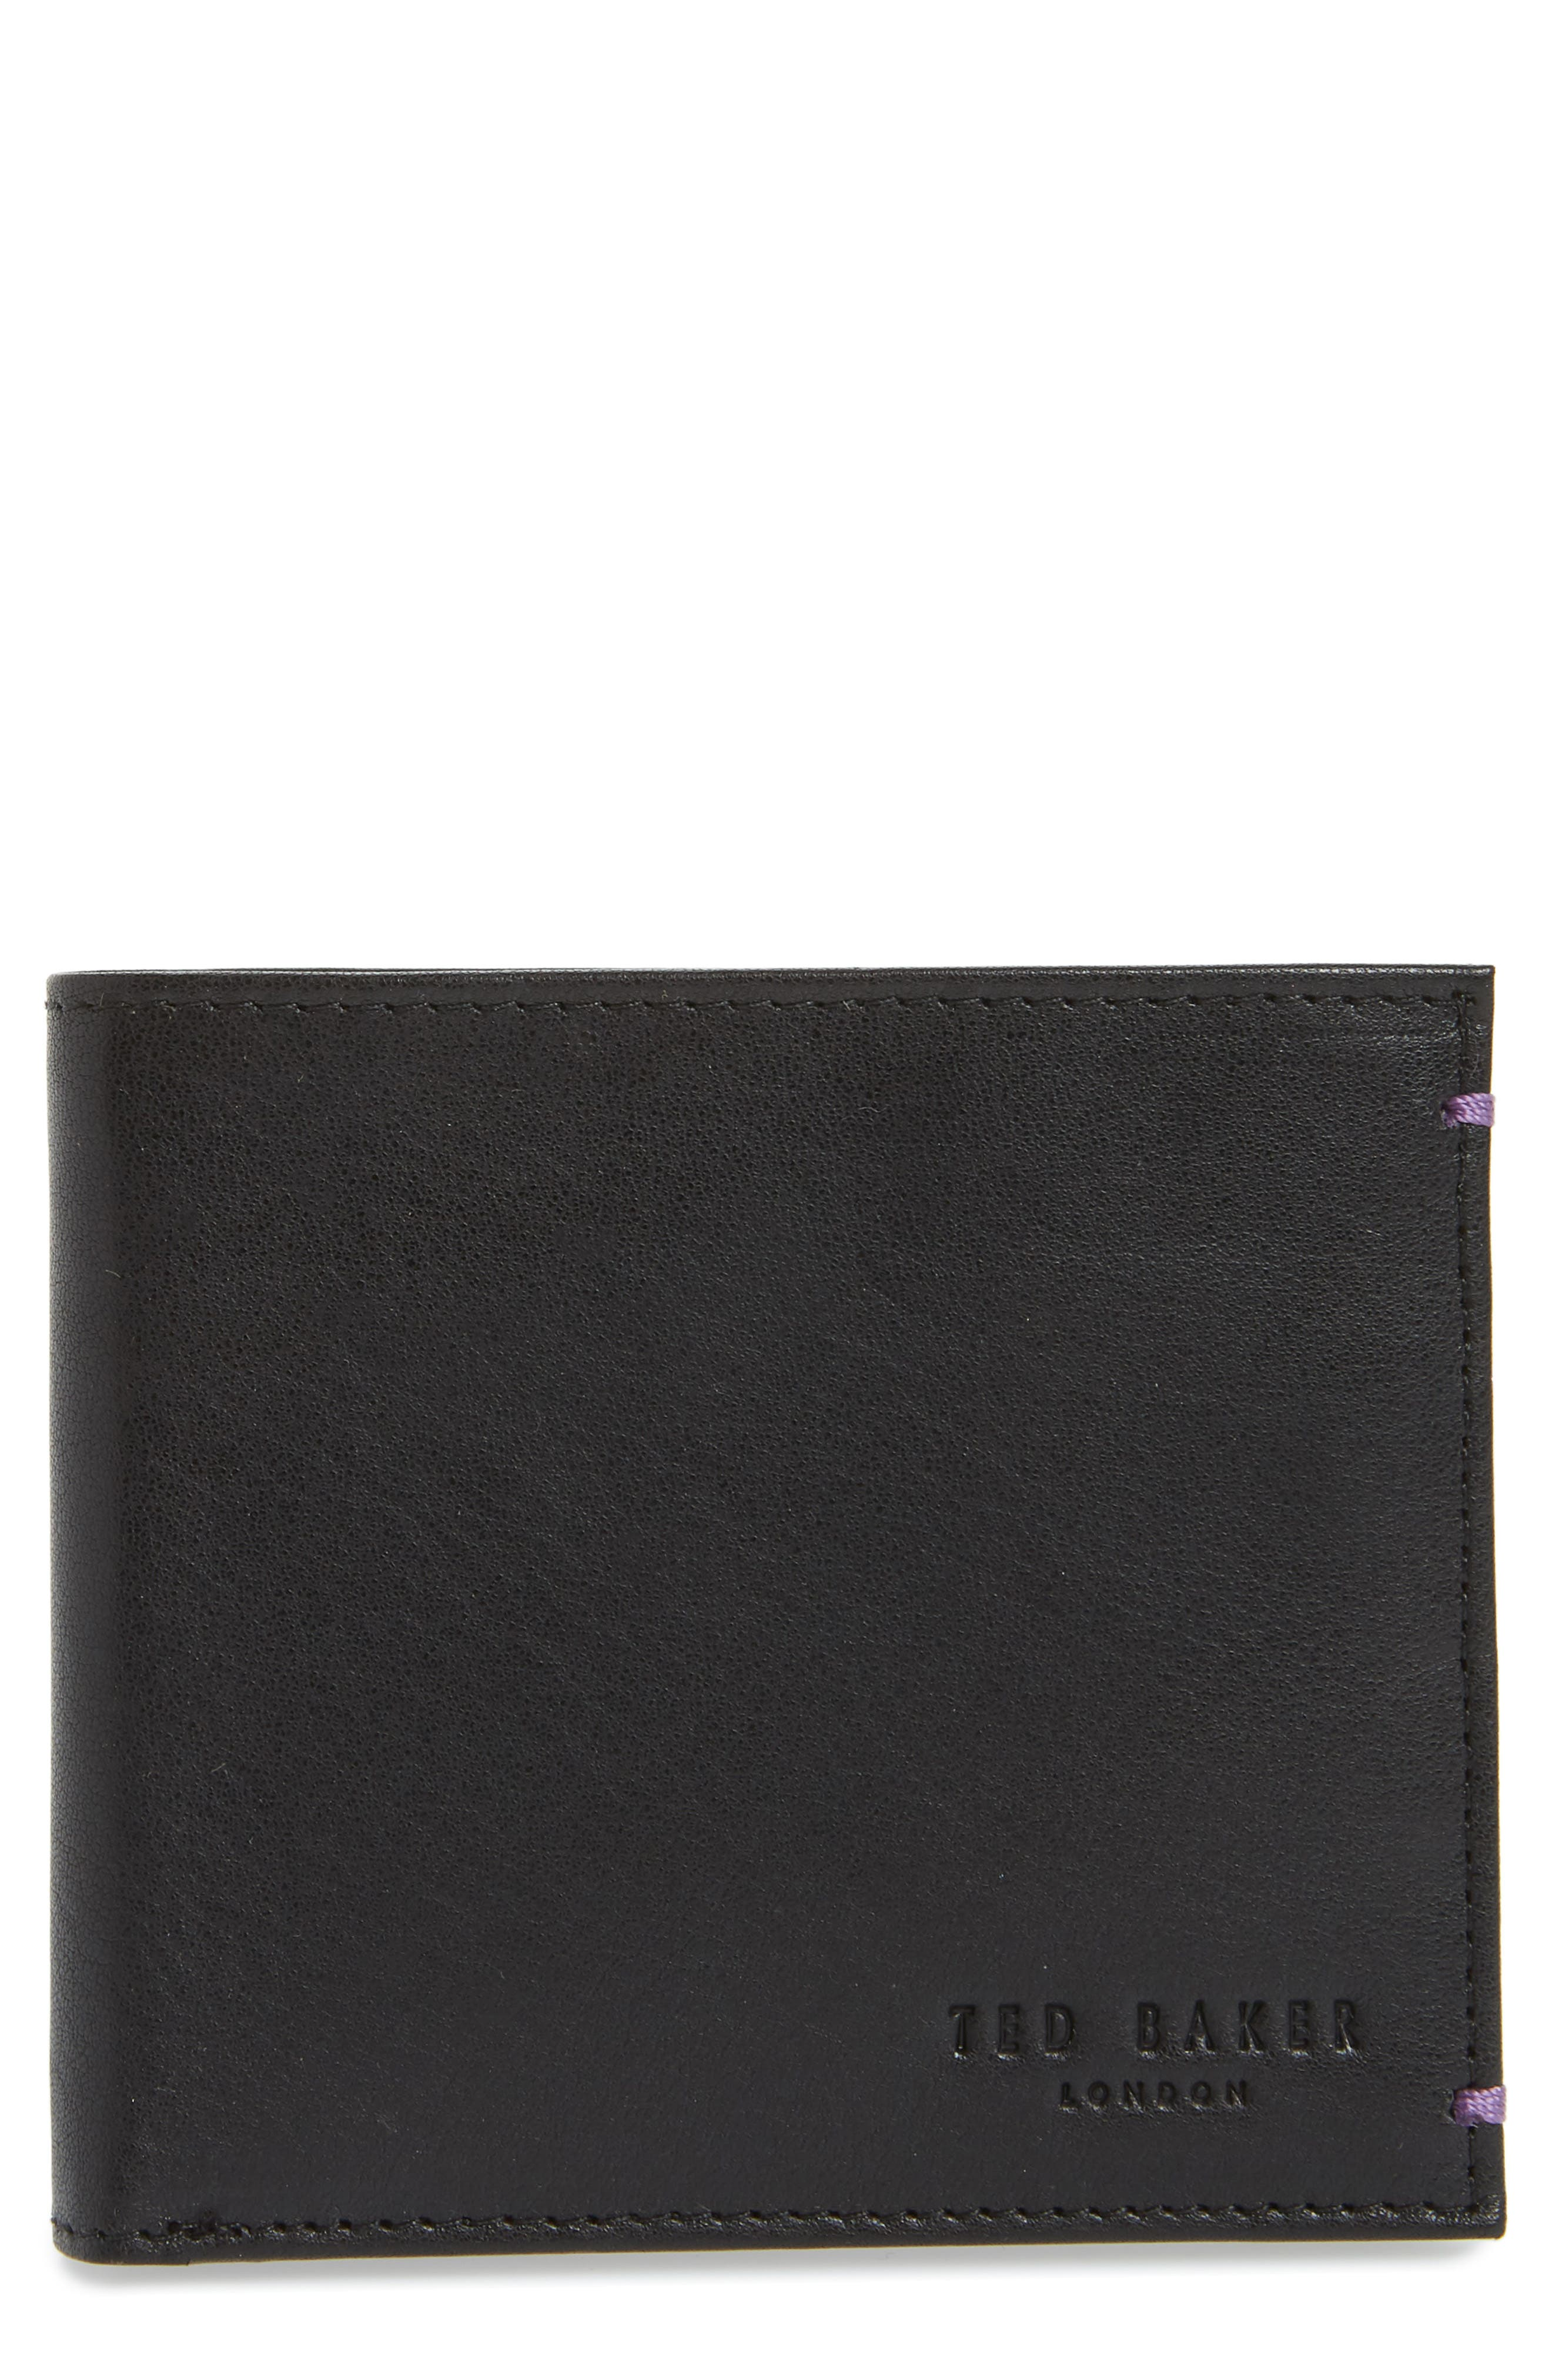 Rester Leather Bifold Wallet,                             Main thumbnail 1, color,                             001